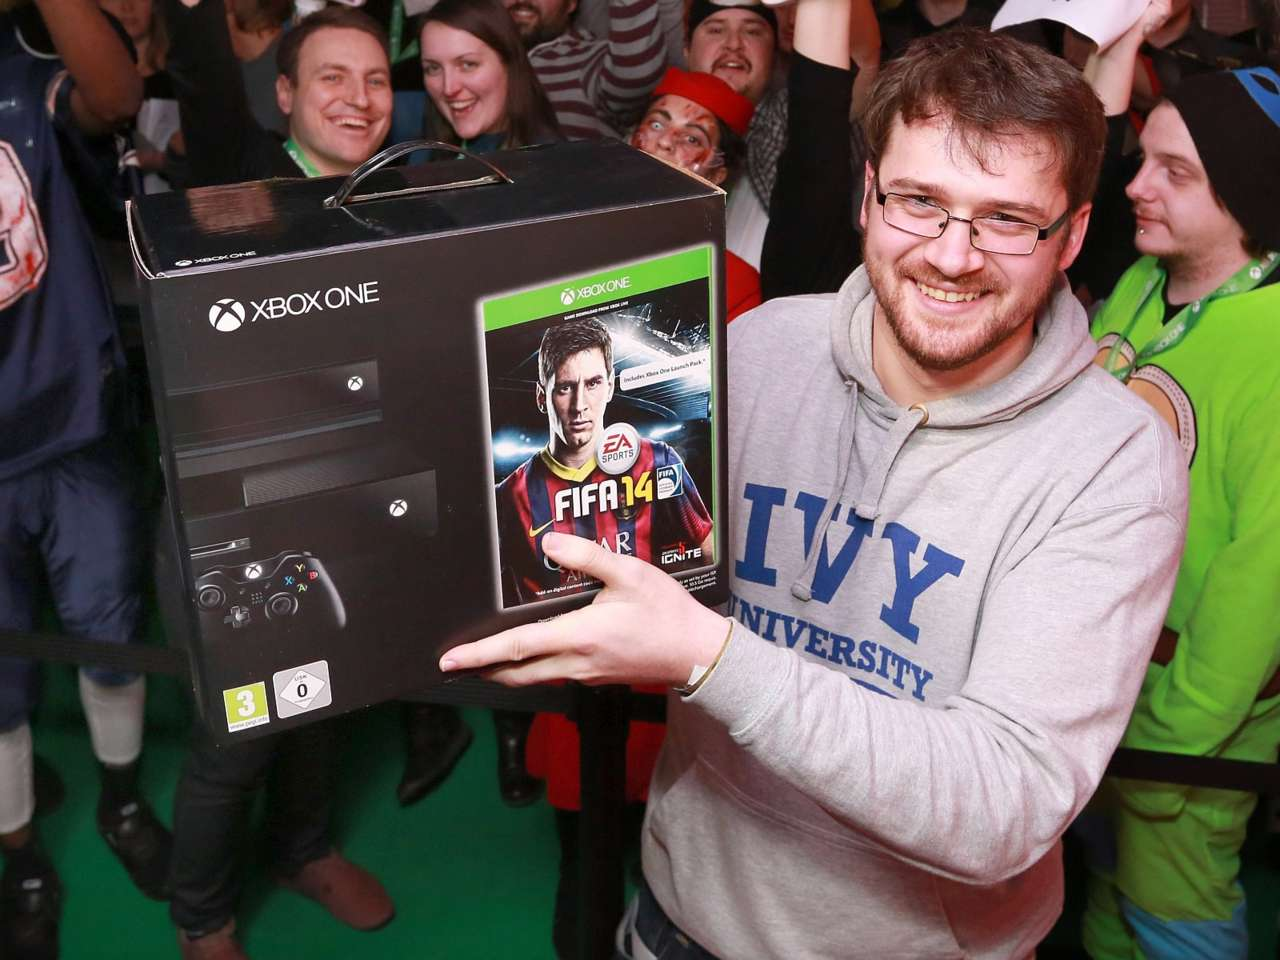 26-year-old Charlie Pulbrook was the first person in the UK to buy an Xbox One. Will he regret spending that extra £30?